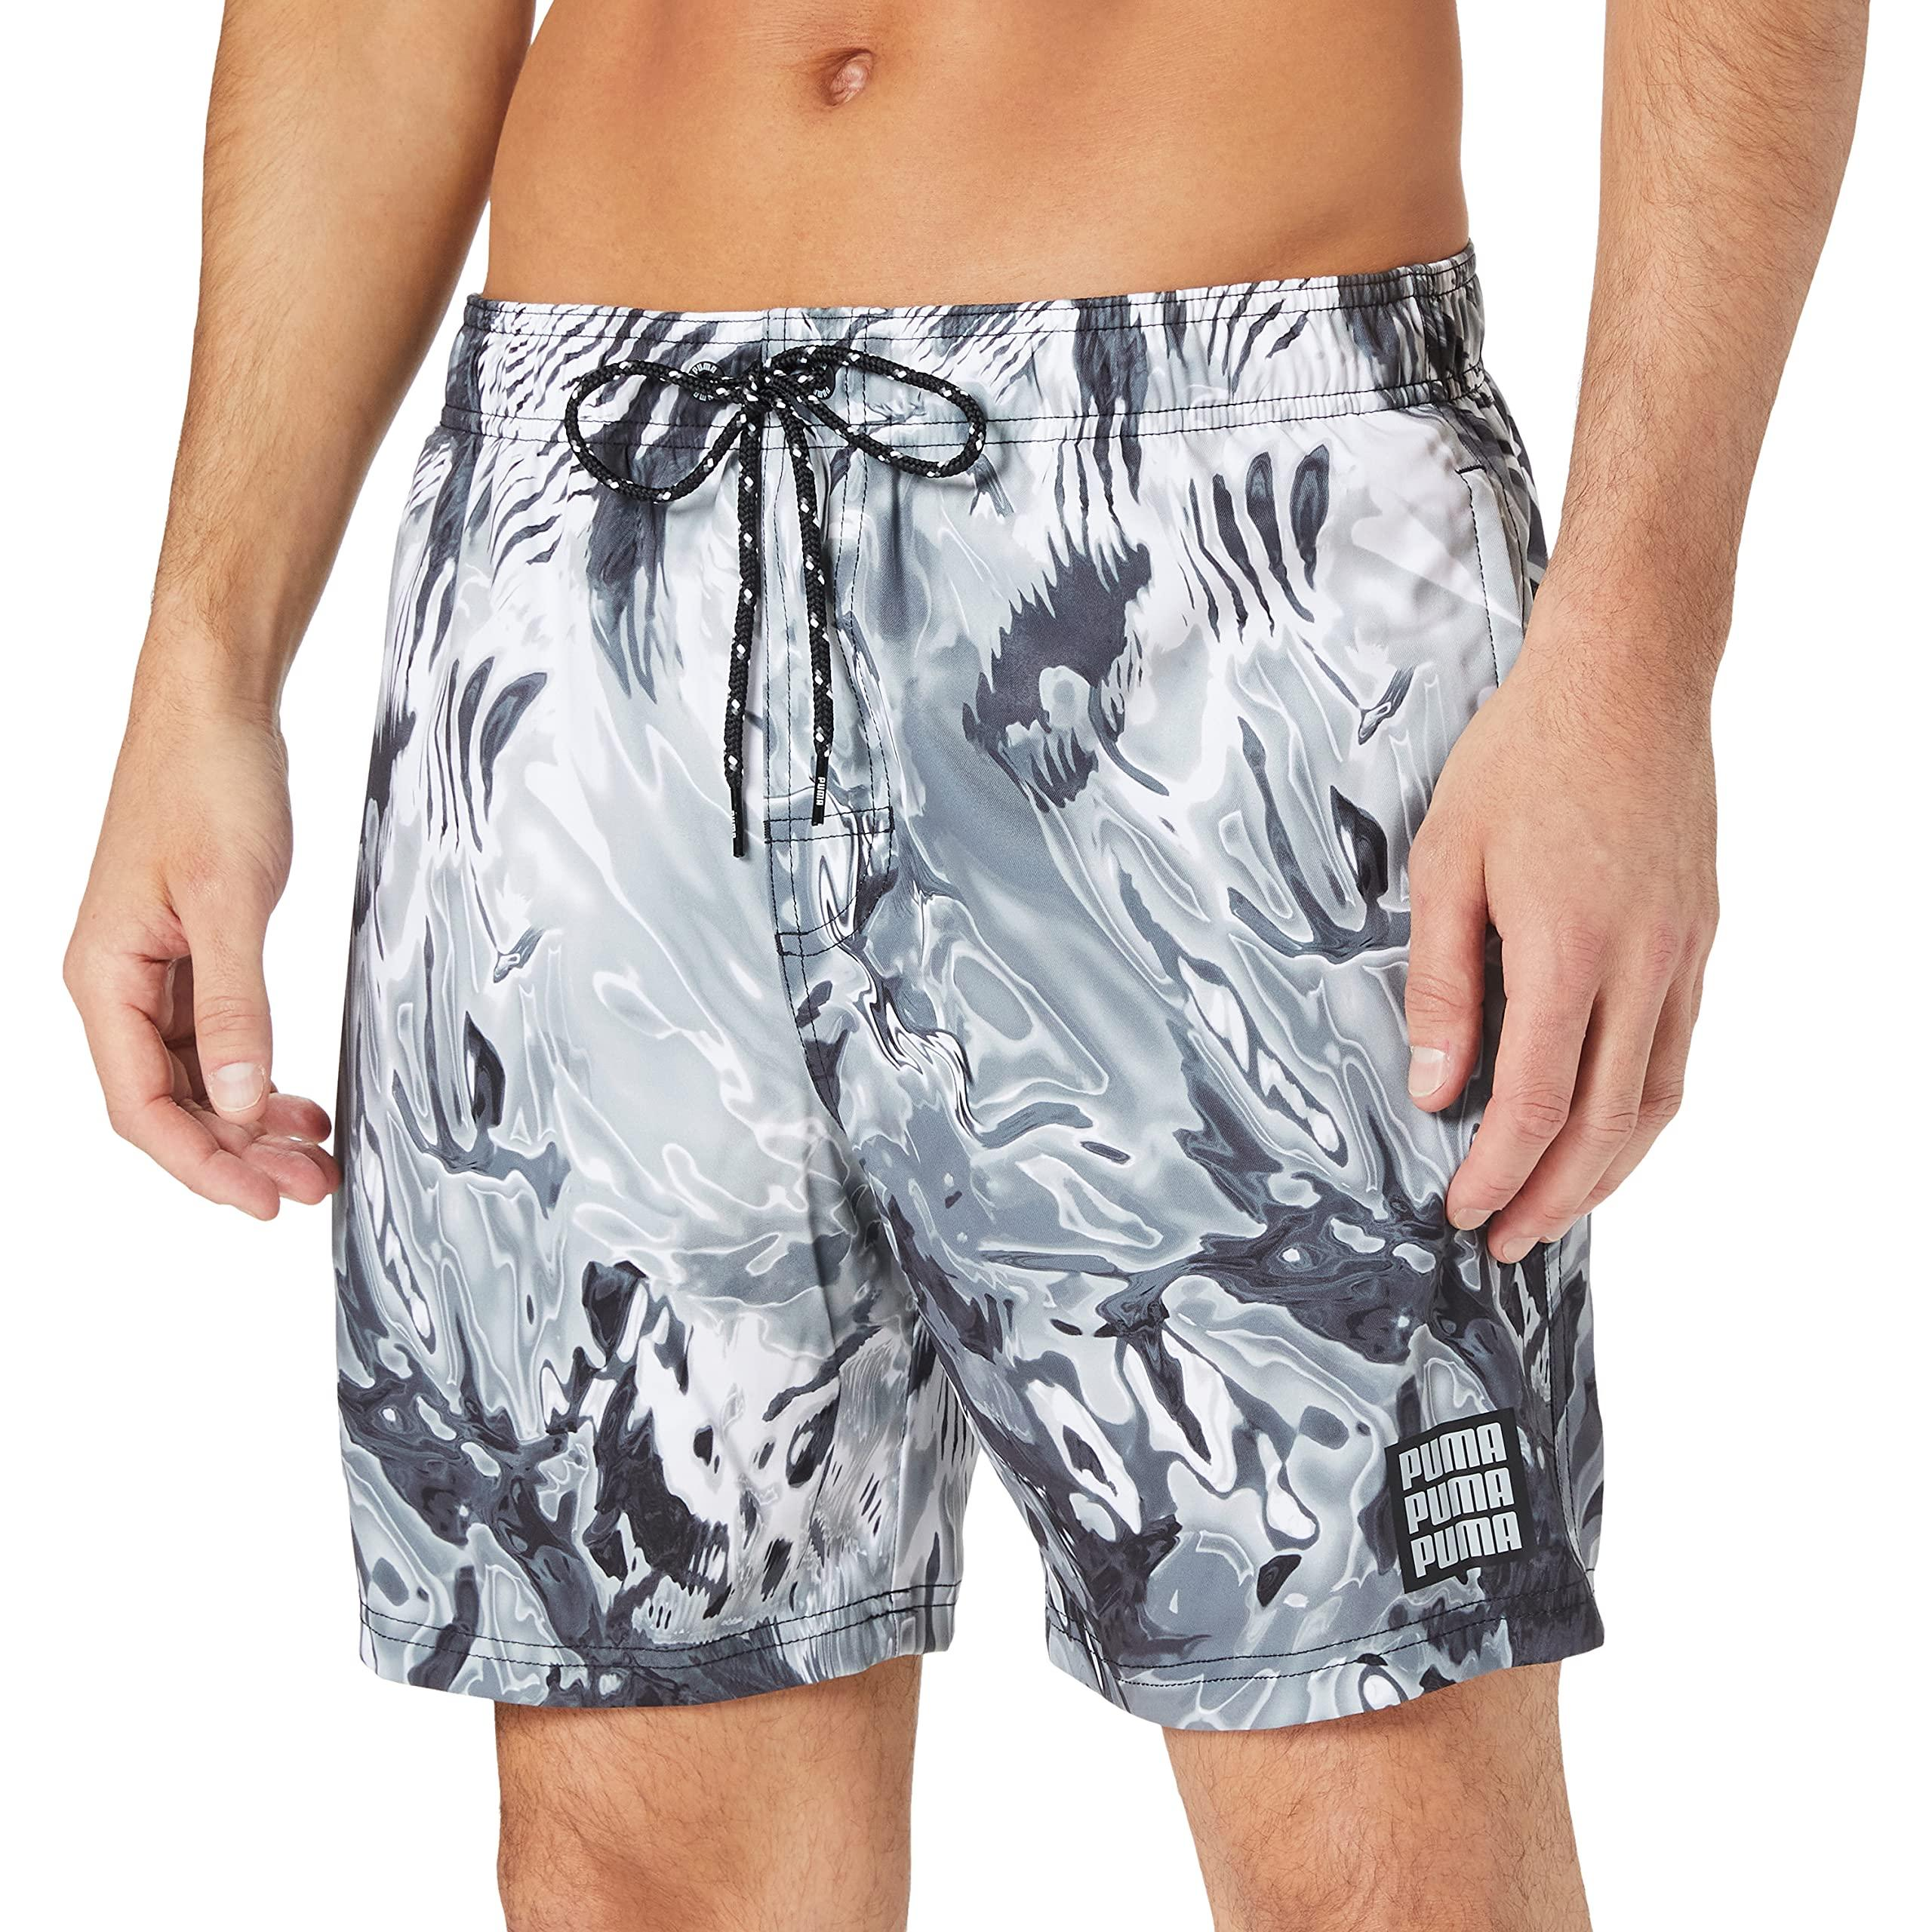 Swim Reflection All-Over-Print Mid Shorts Natation Synthétique ...